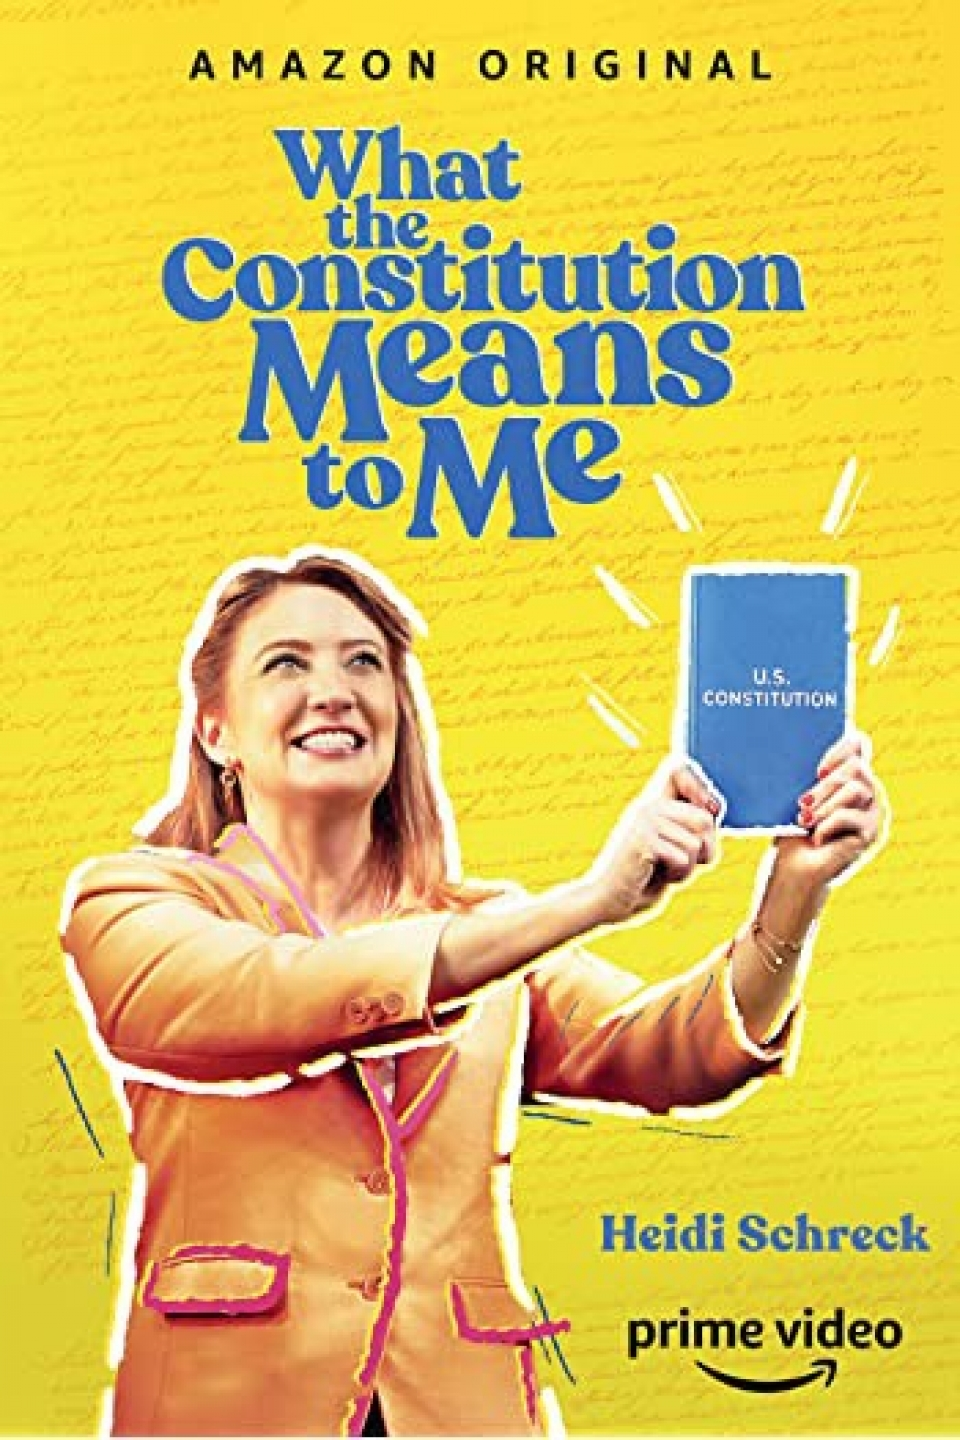 WHAT THE CONSTITUTION MEANS TO ME (2020) AMAZON